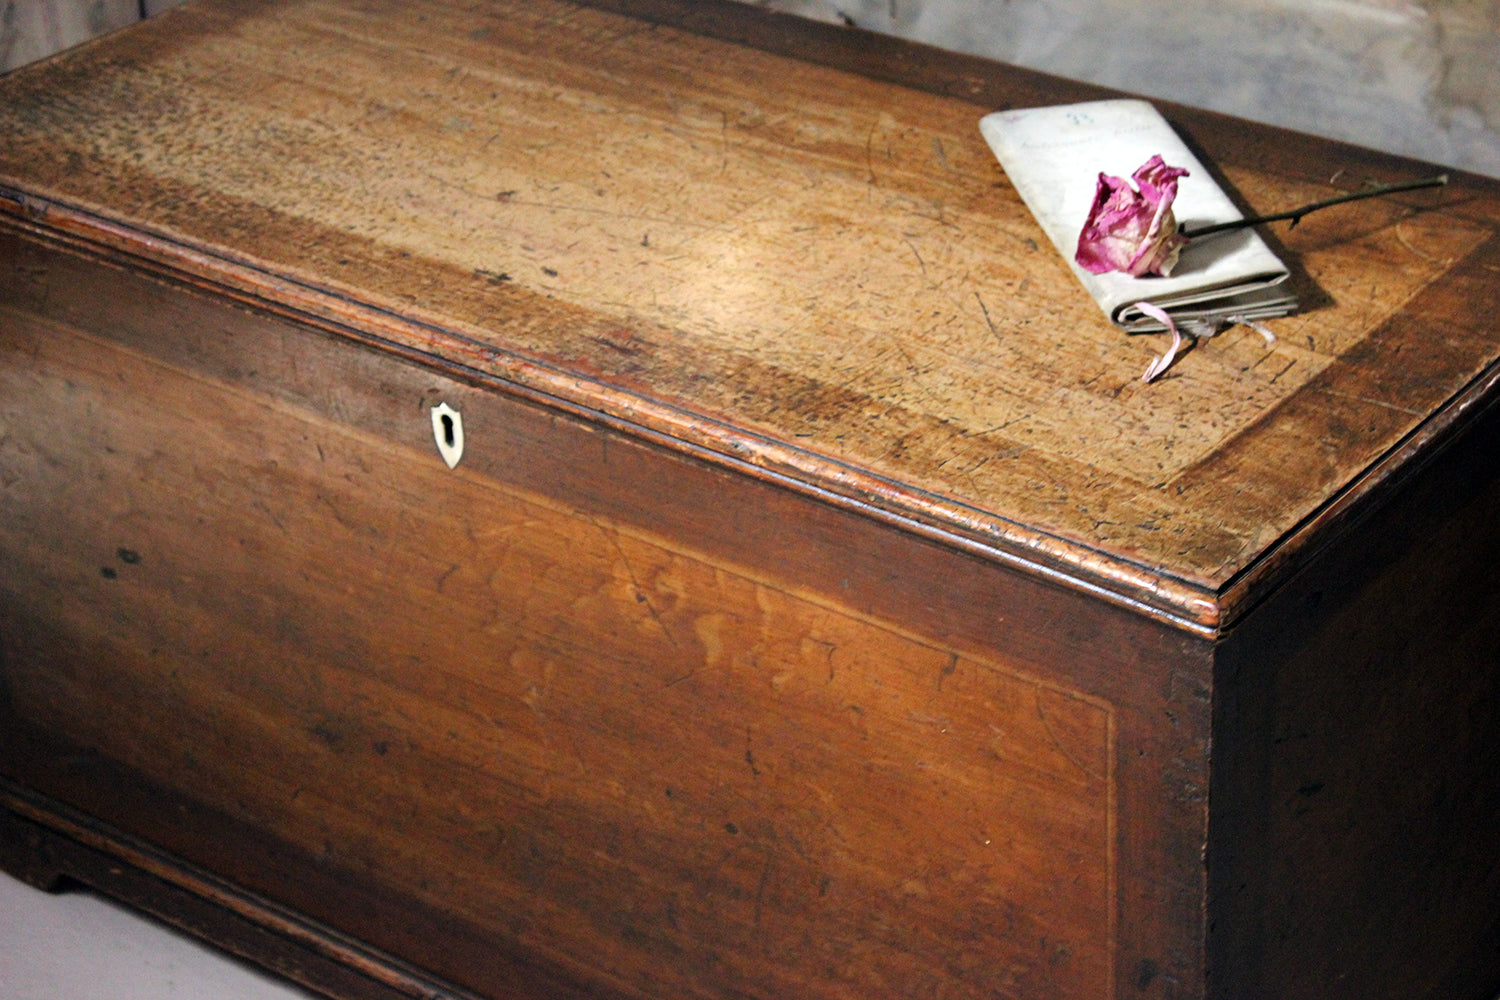 An Early 19thC Painted Pine Blanket Chest; With Memorium Verses for Ann & Thomas Swaby 1824